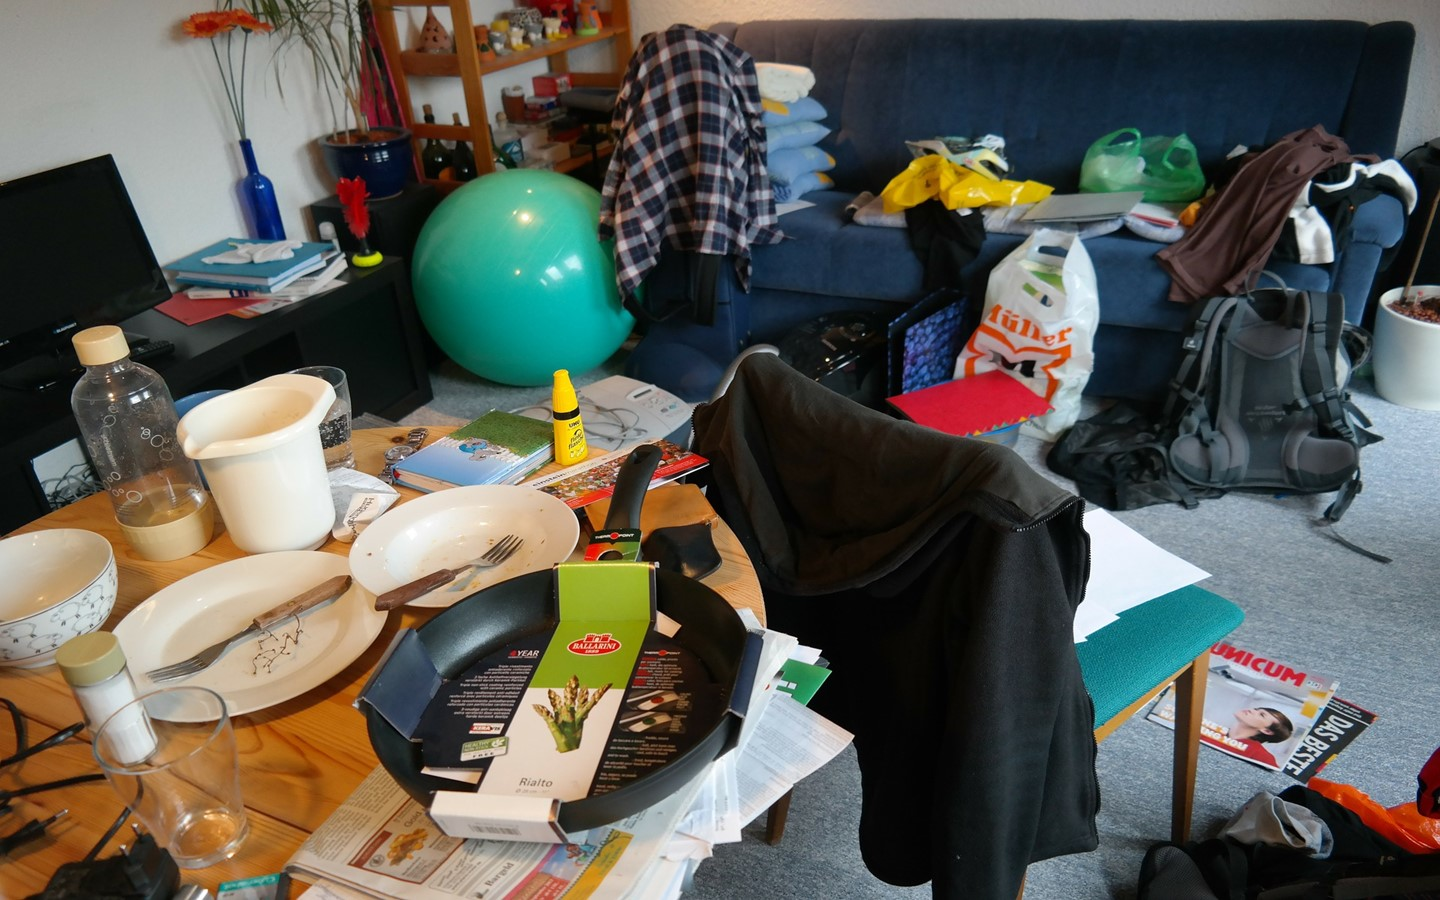 Clutter is a biggest enemy